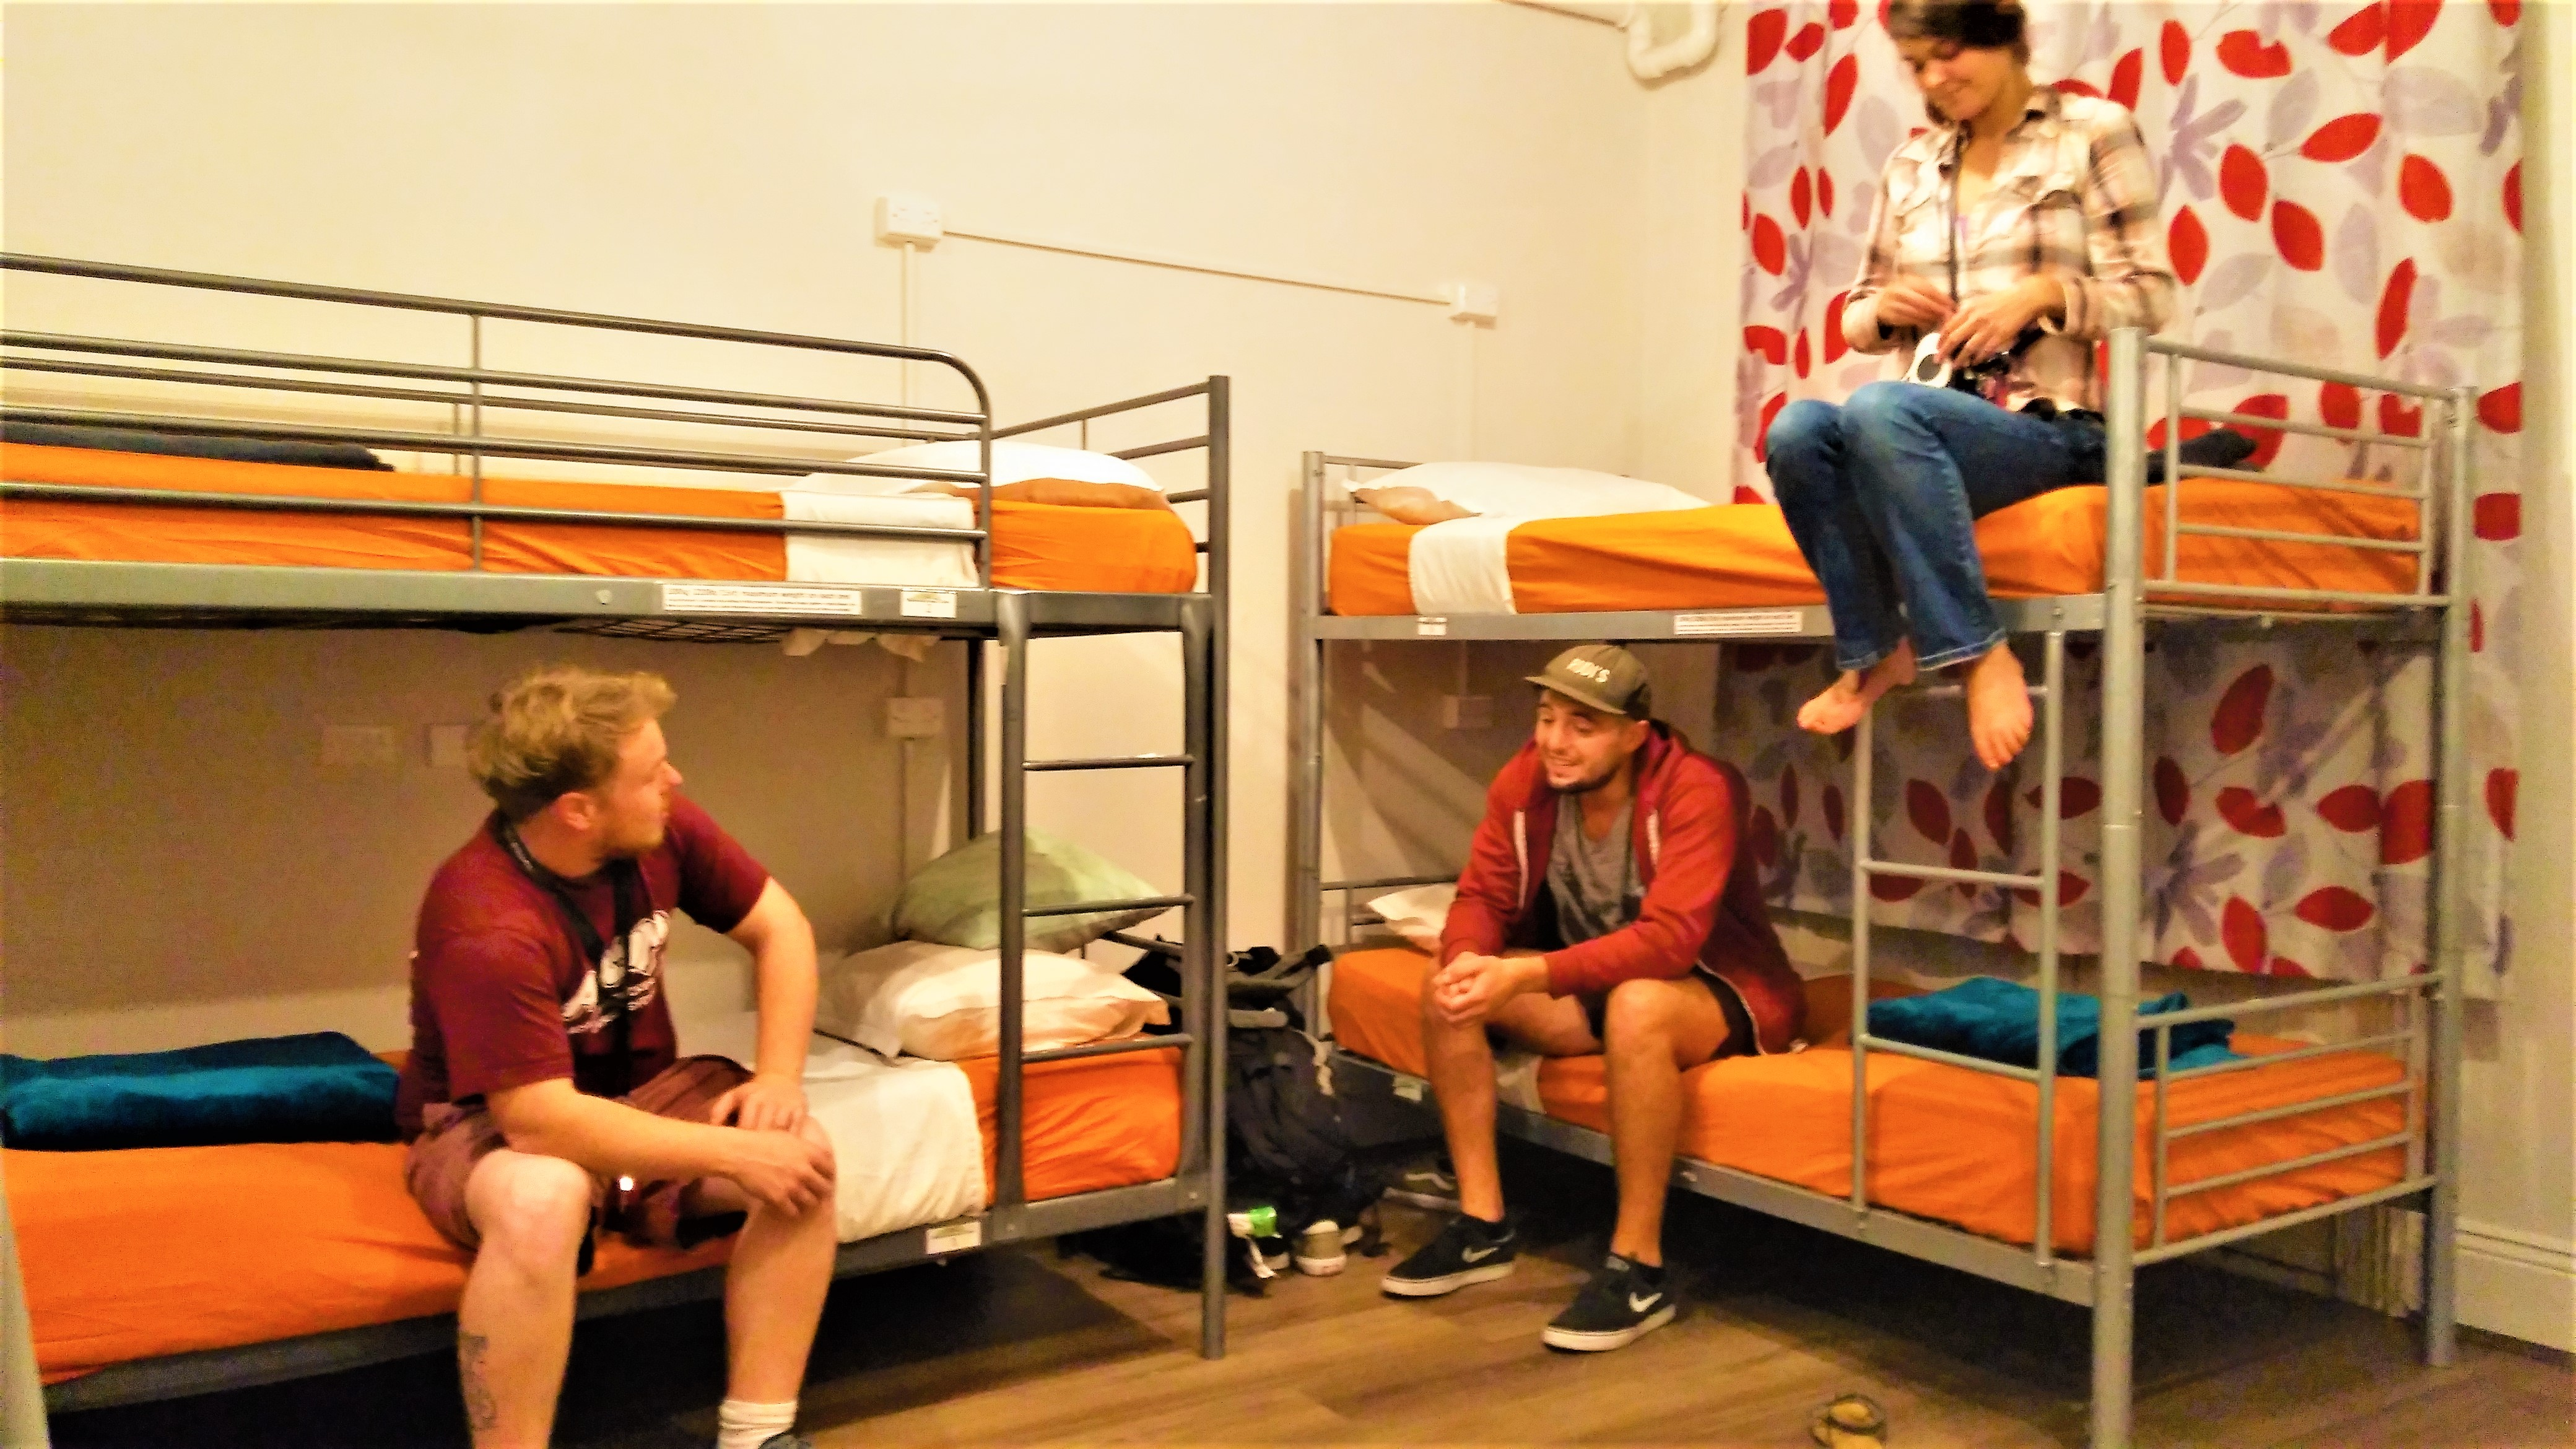 Asylum Sydney Backpackers Hostel